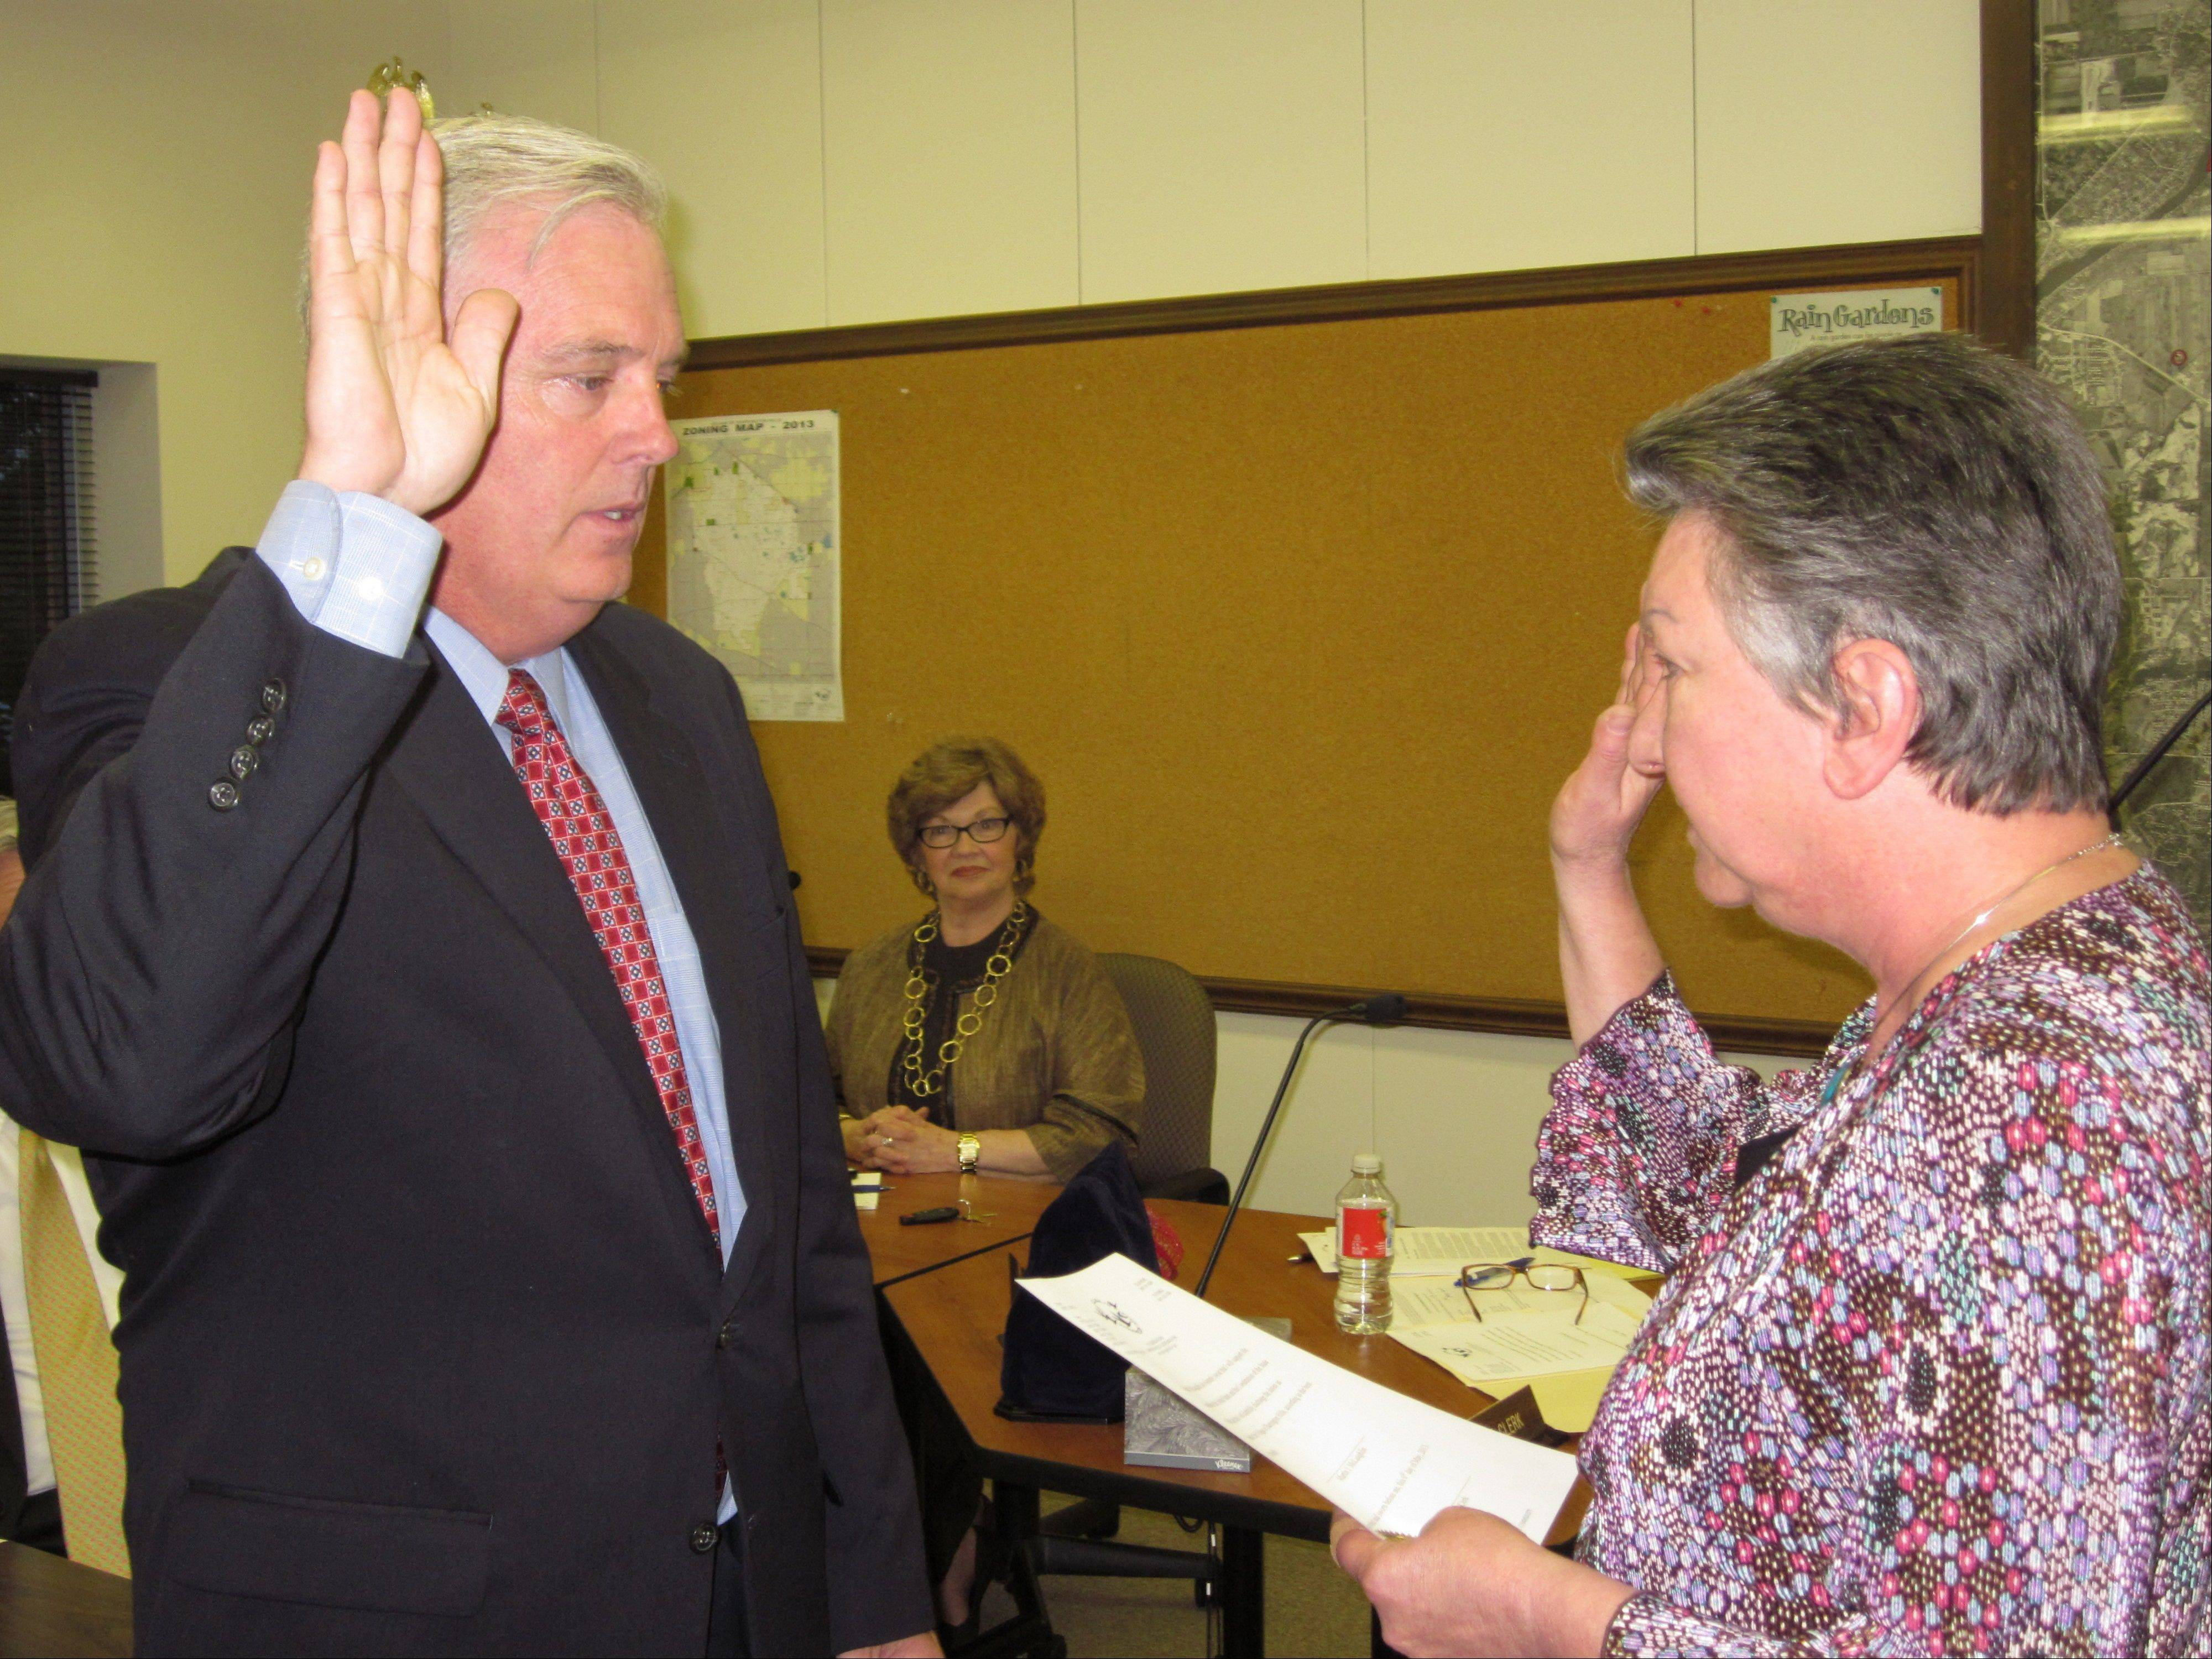 Newly elected Barrington Hills Village President Martin McLaughlin takes the oath of office Monday, administered by Village Clerk Dolores Trandel.